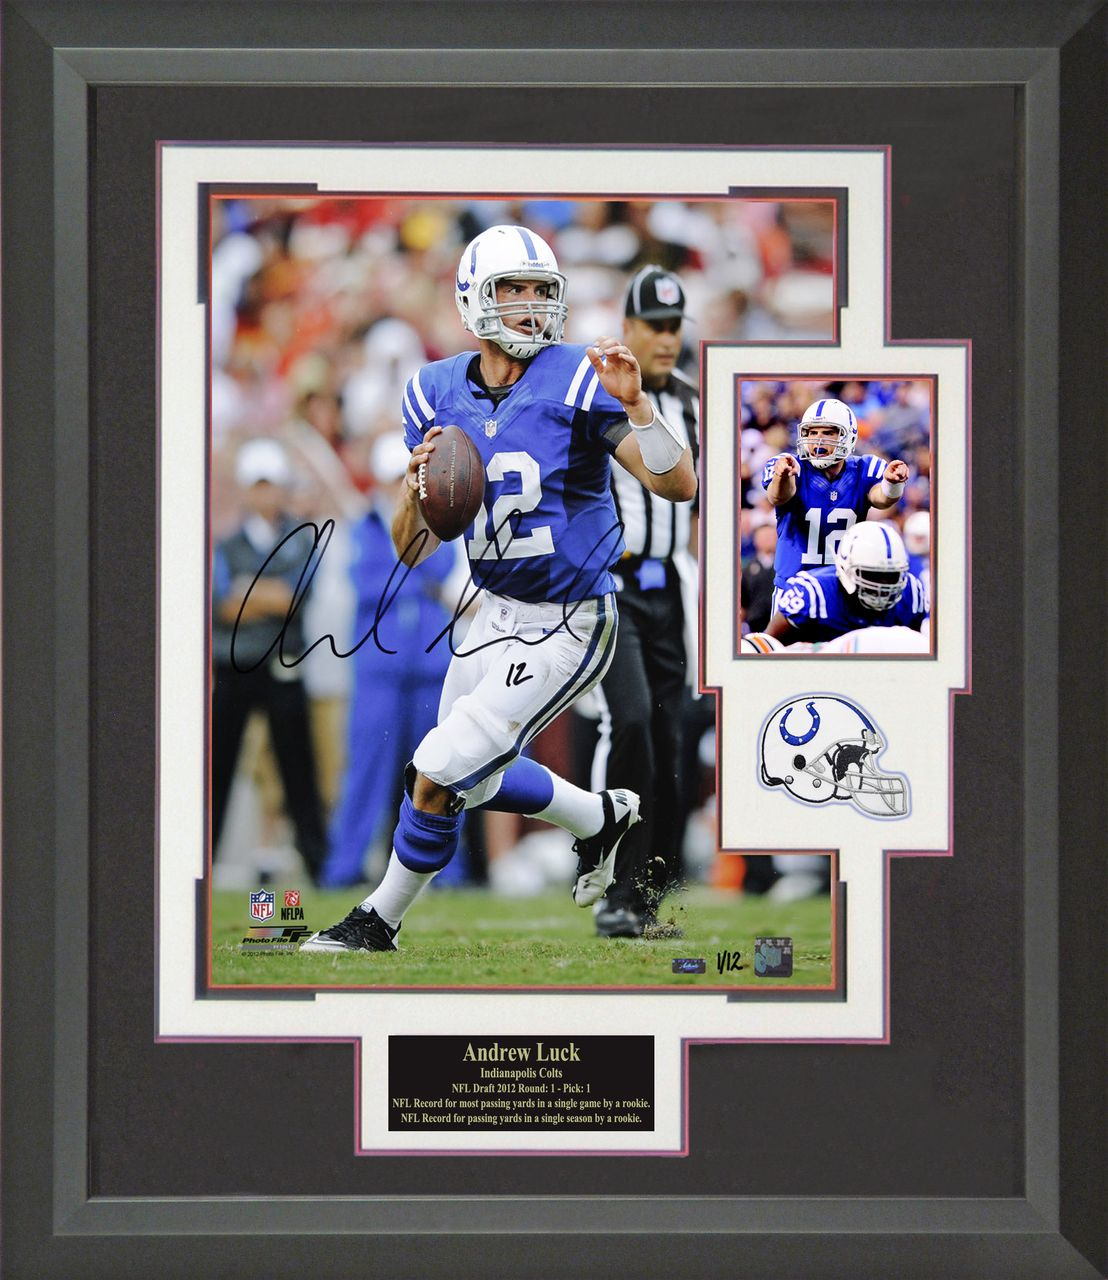 the latest 267f9 aabf4 Andrew Luck Autographed Indianapolis Colts Framed Photo ...